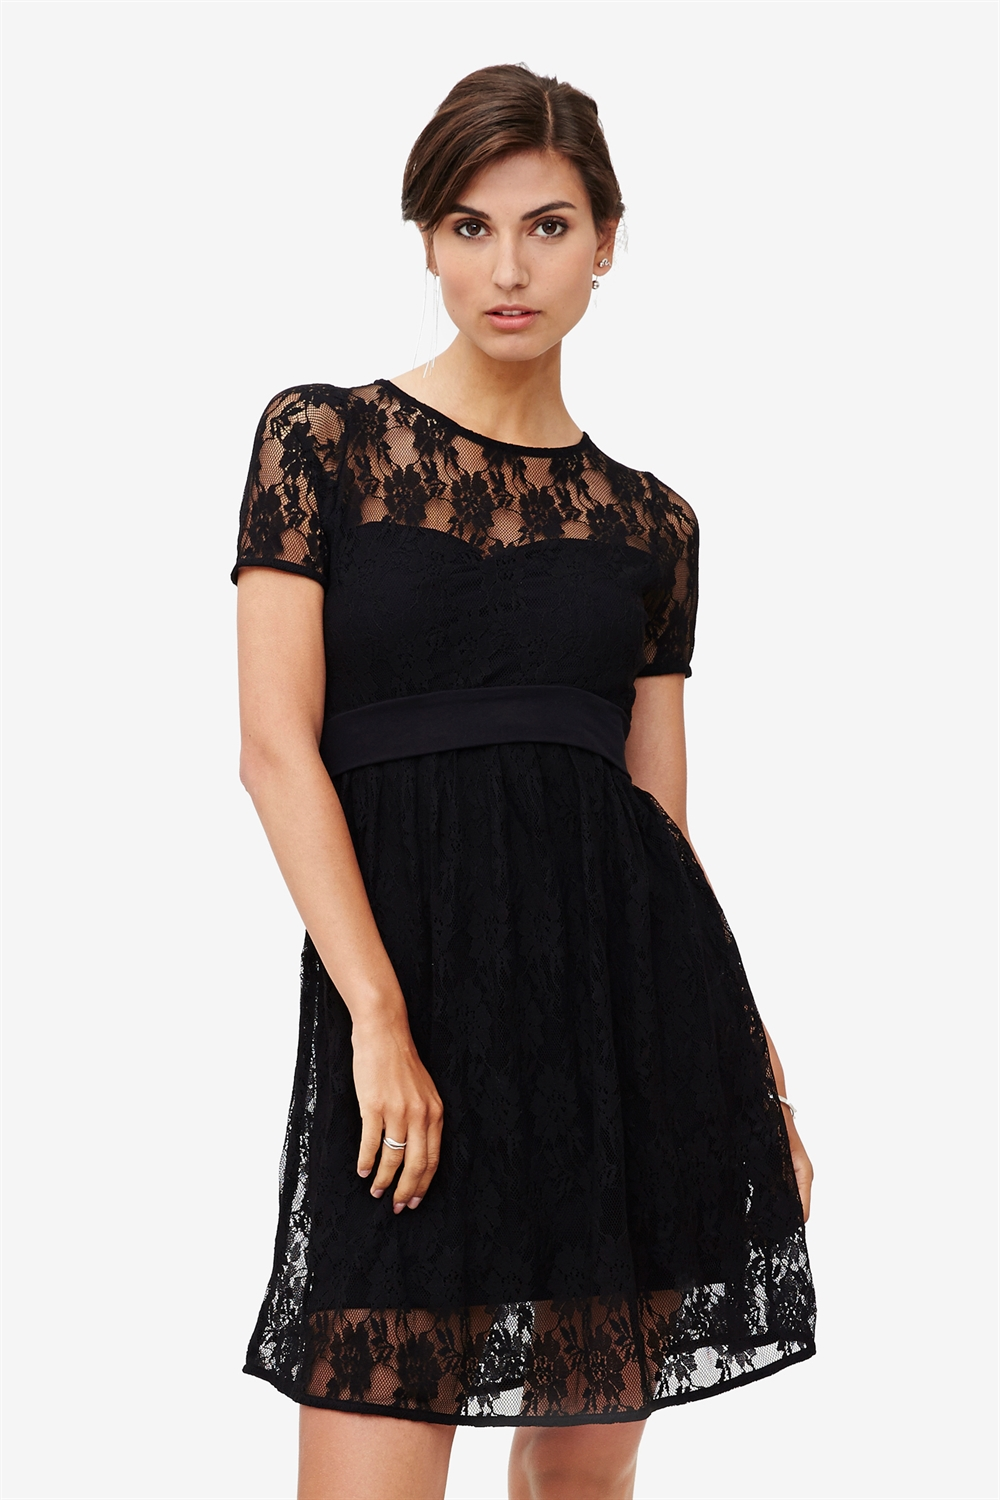 Black lace dress with underdress